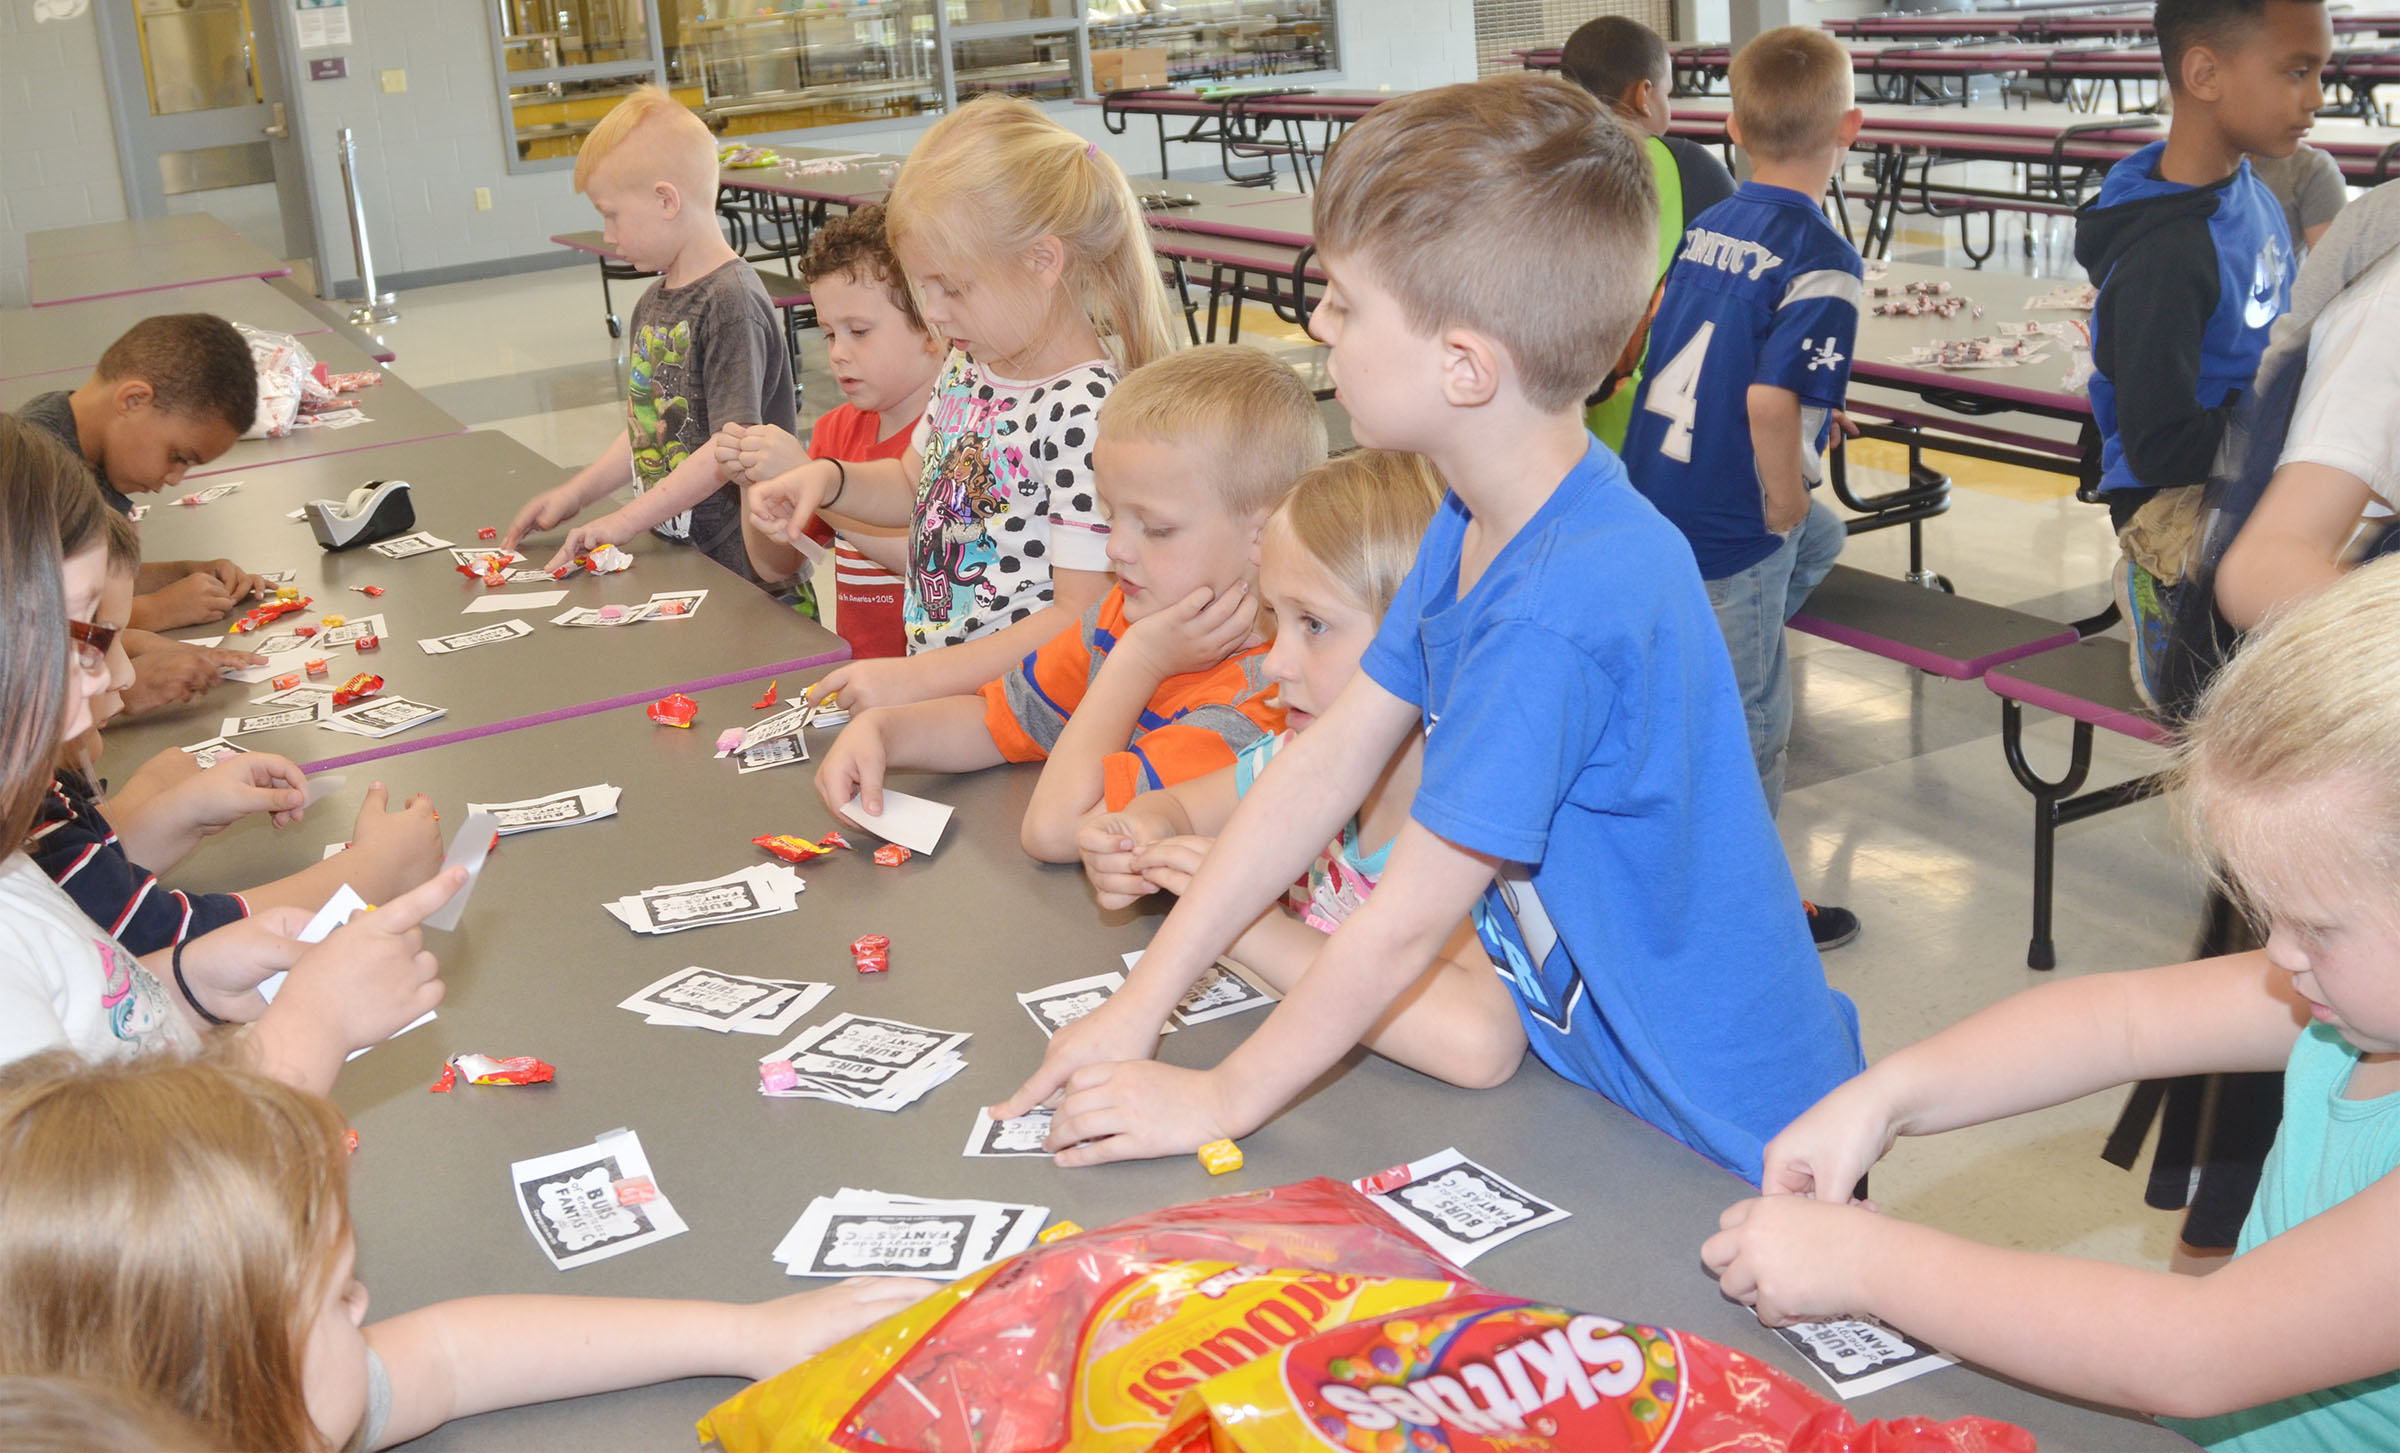 CES kindergarteners sort treats for third-grade students who will soon take state standardized tests.